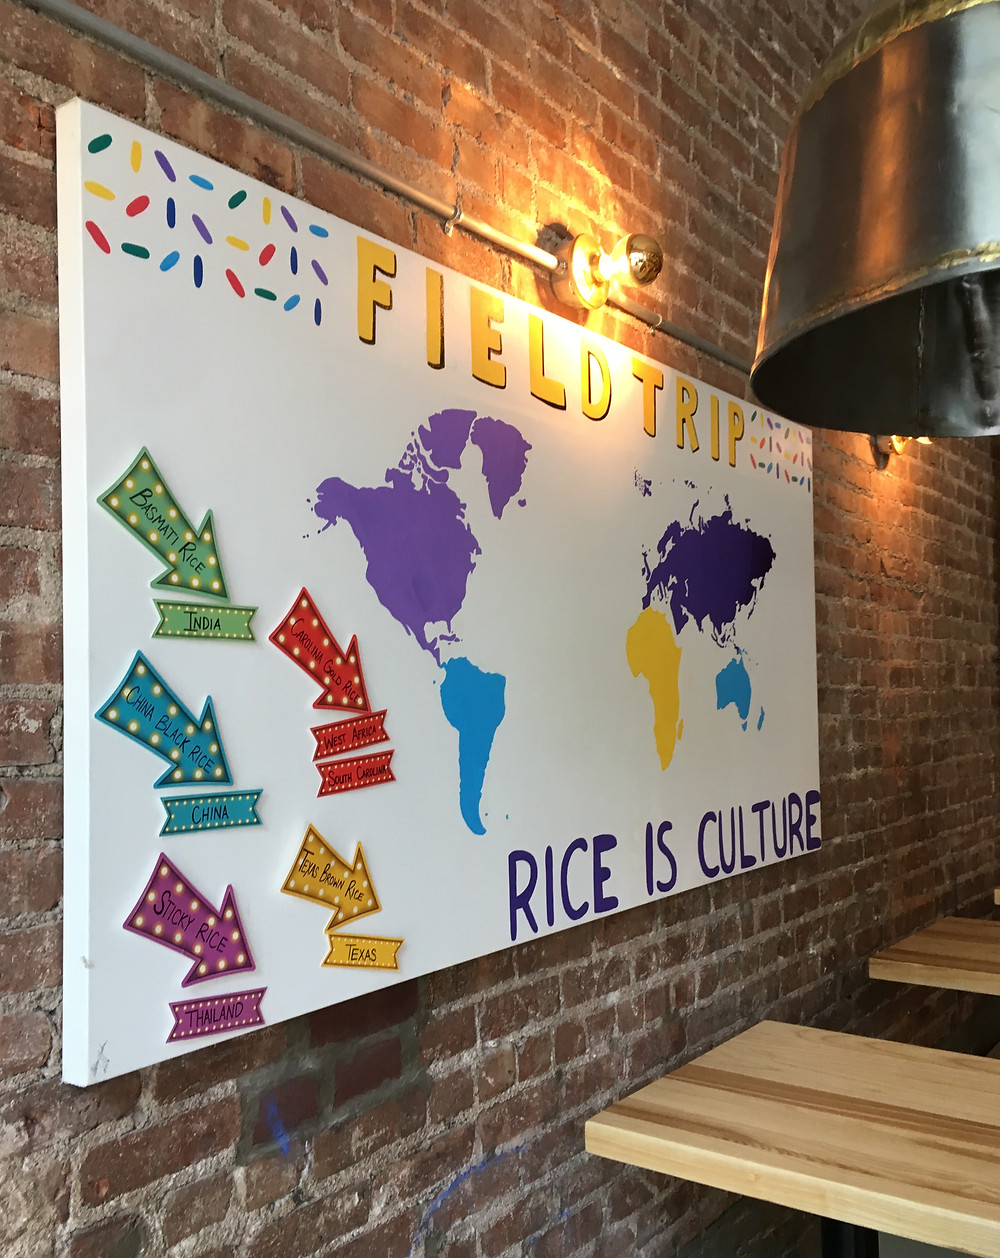 Chef JJ Johnson returns to Harlem with the rice-focused restaurant Fieldtrip